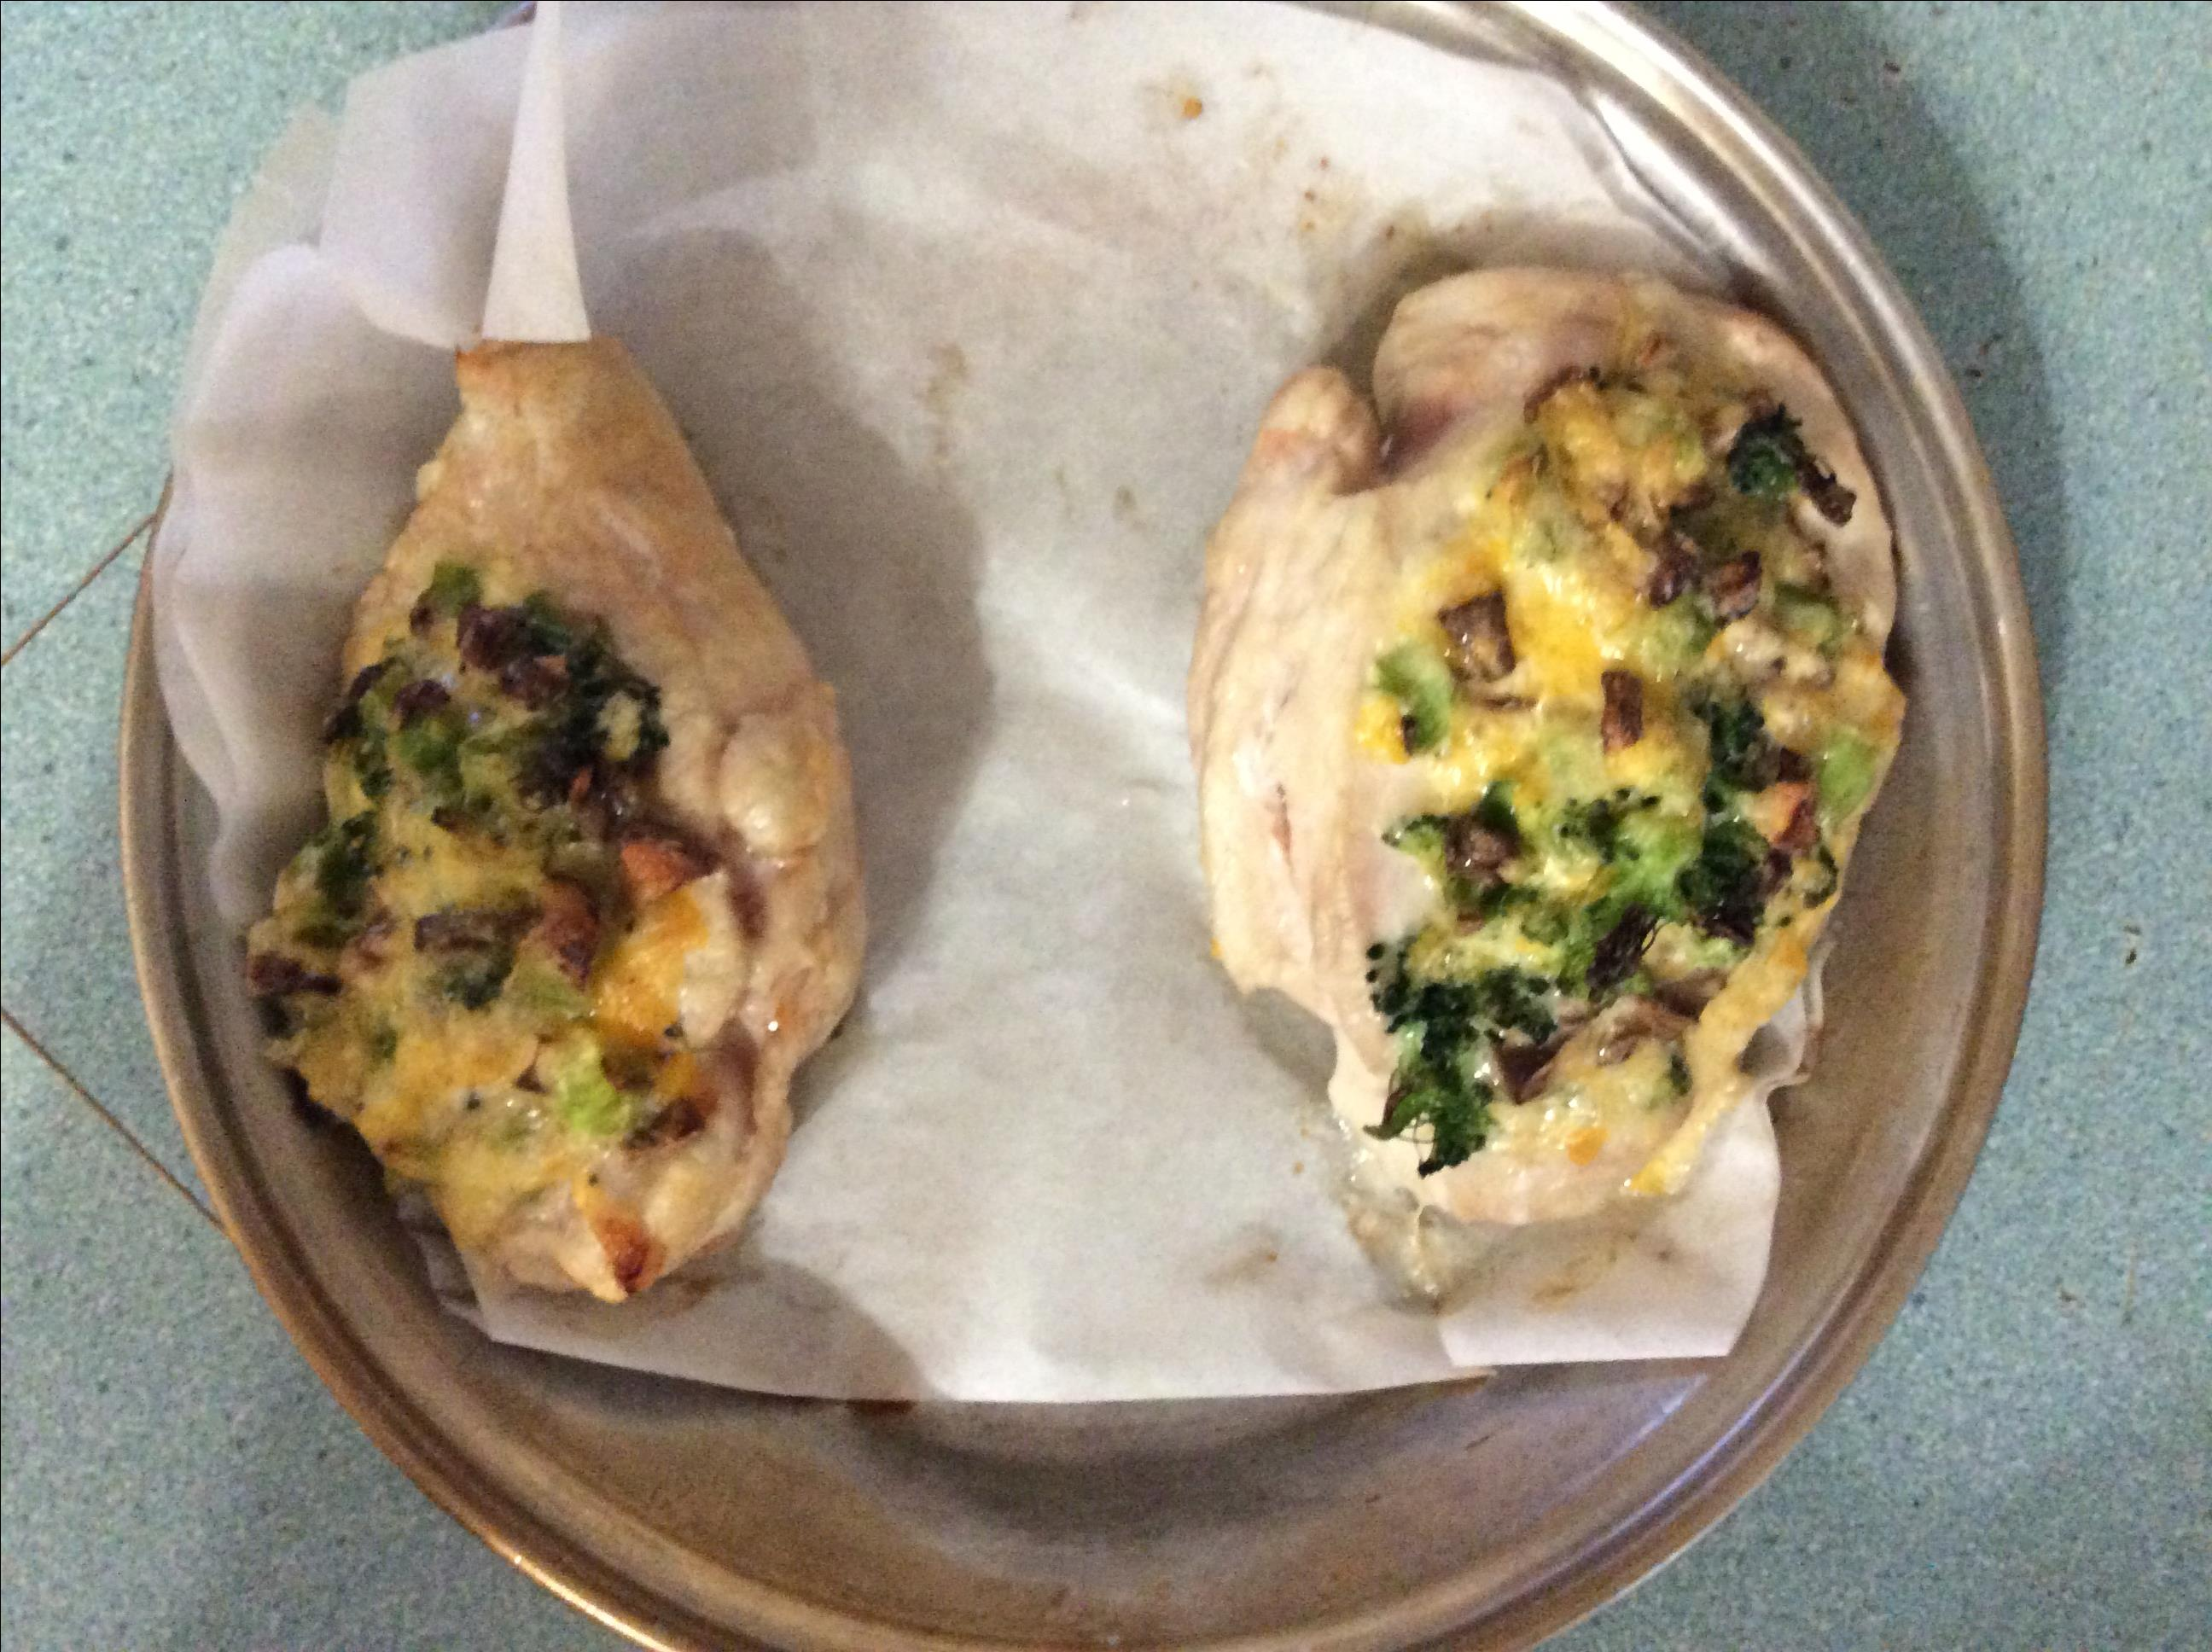 Mushroom, Broccoli, and Cheese Stuffed Chicken Shanny